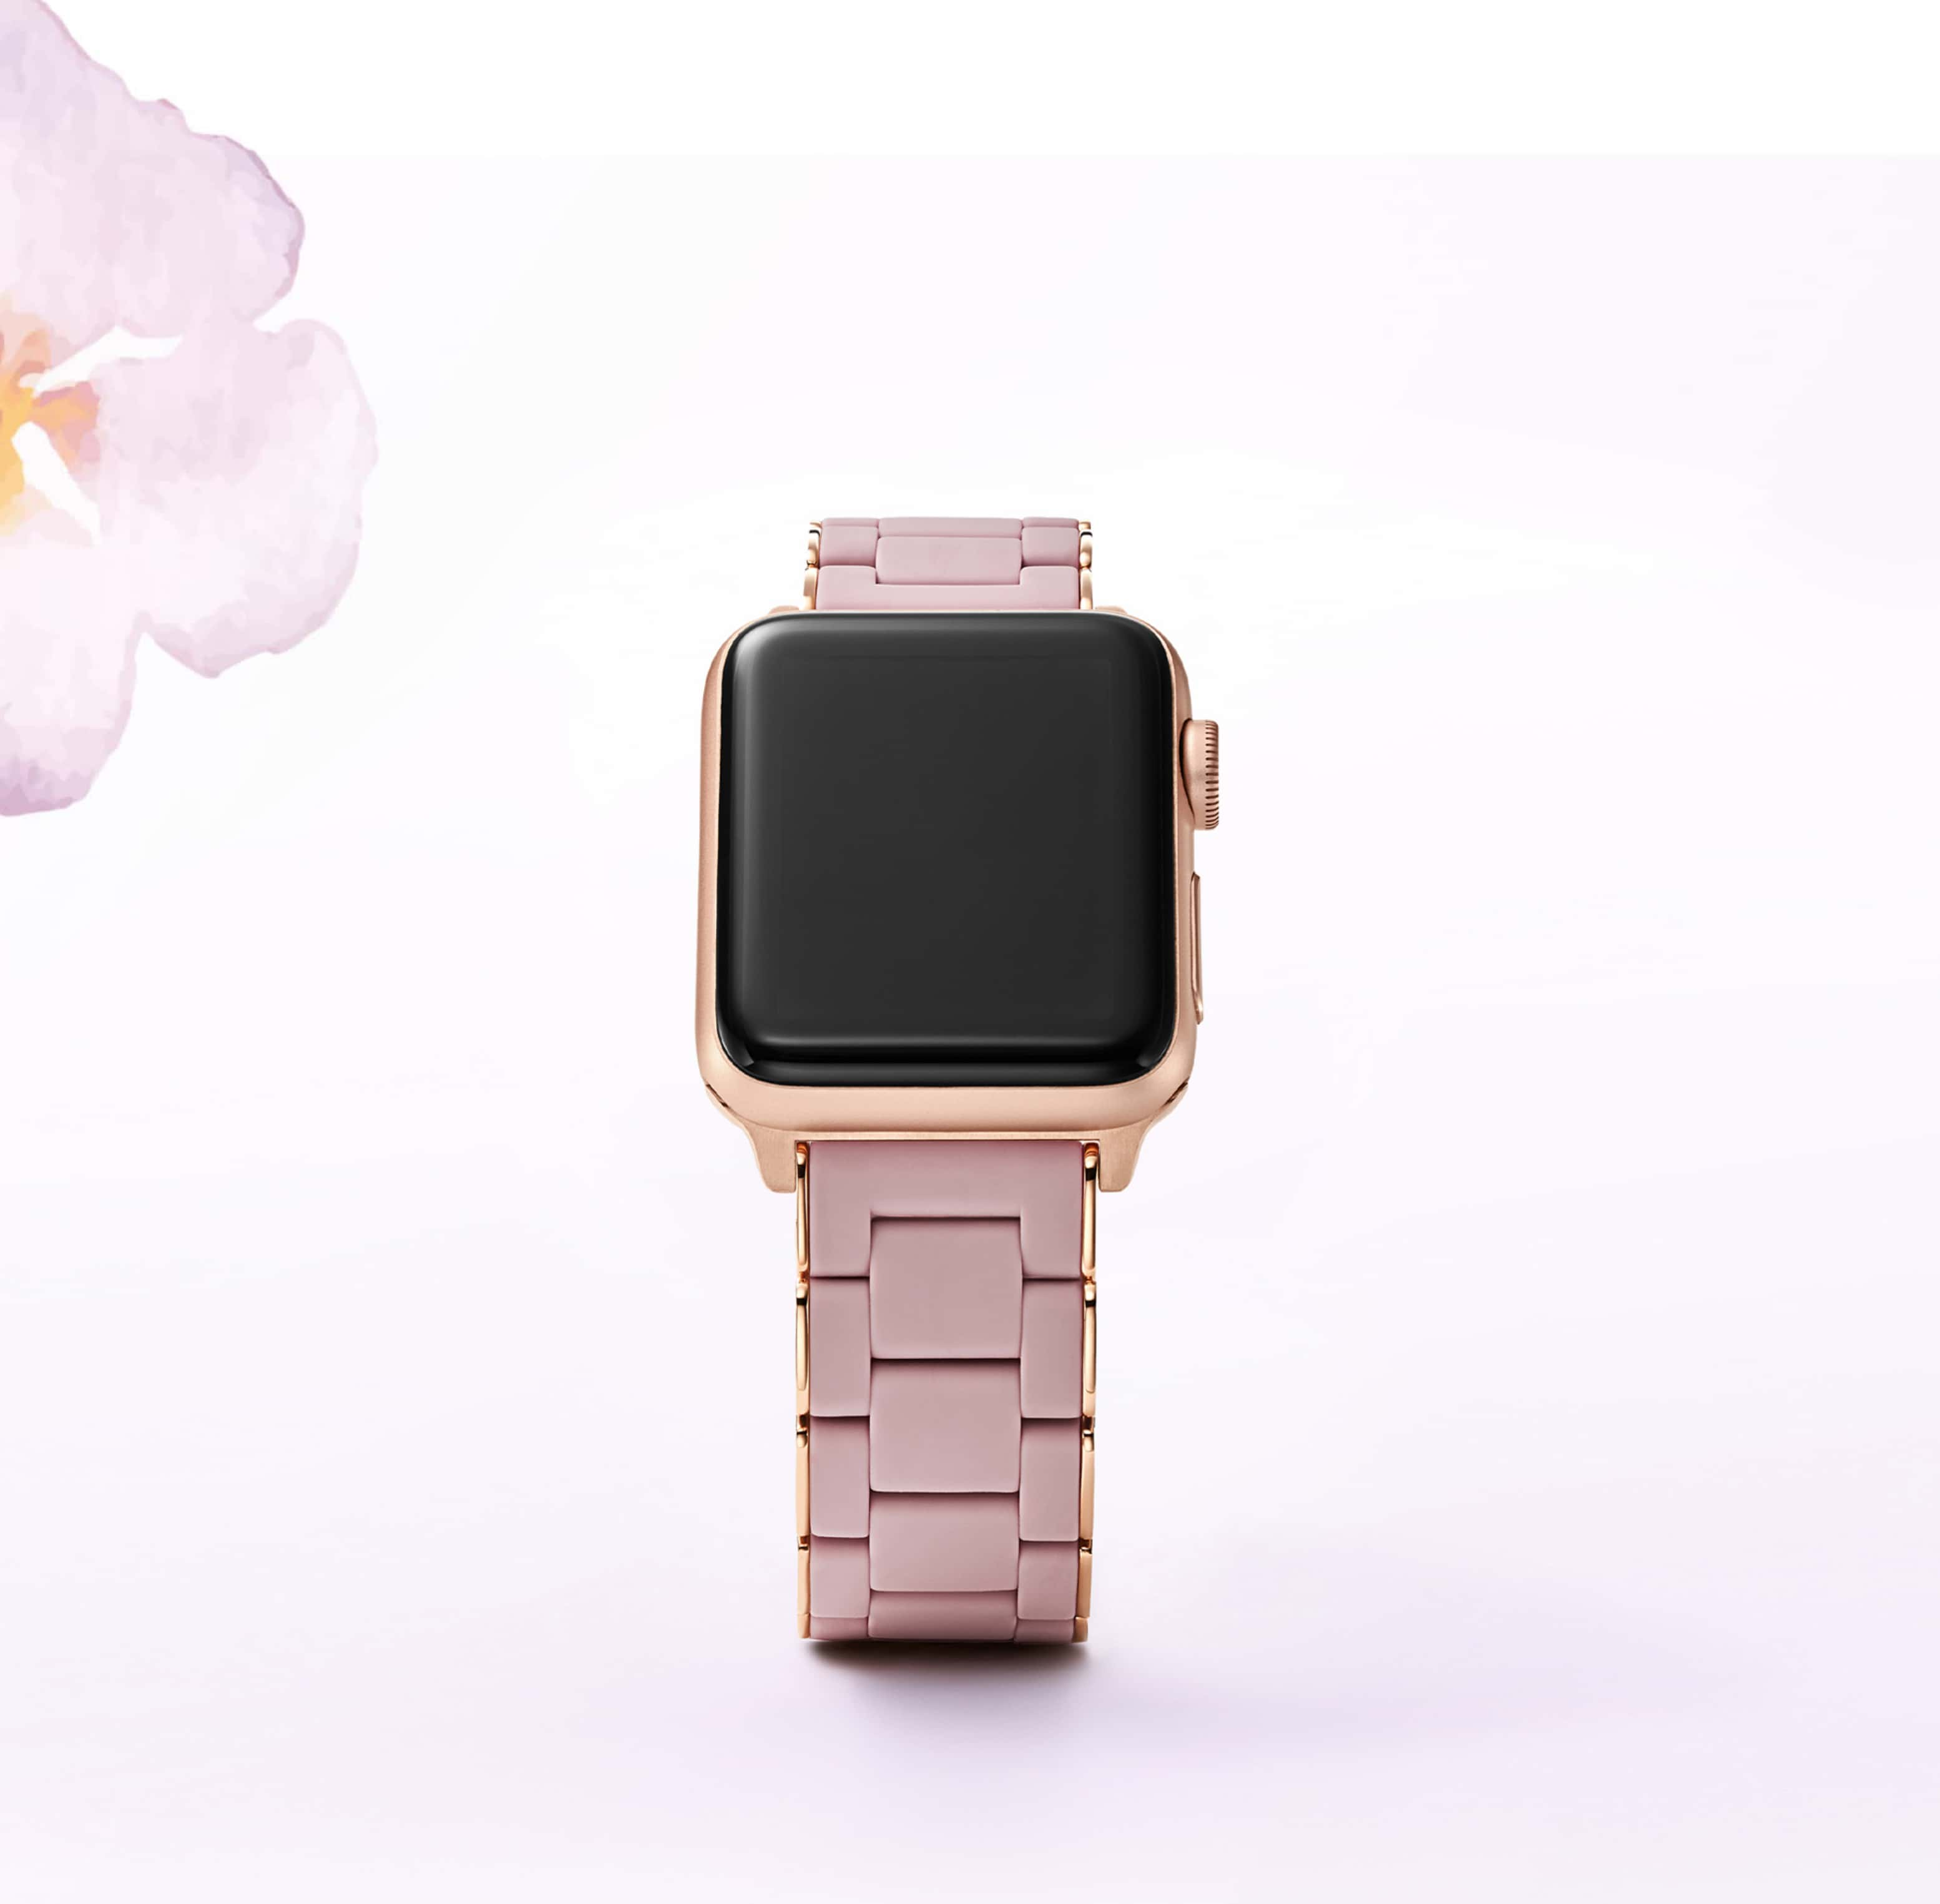 Silicone-wrapped band for Apple Watch® in rose and rose gold-tone.